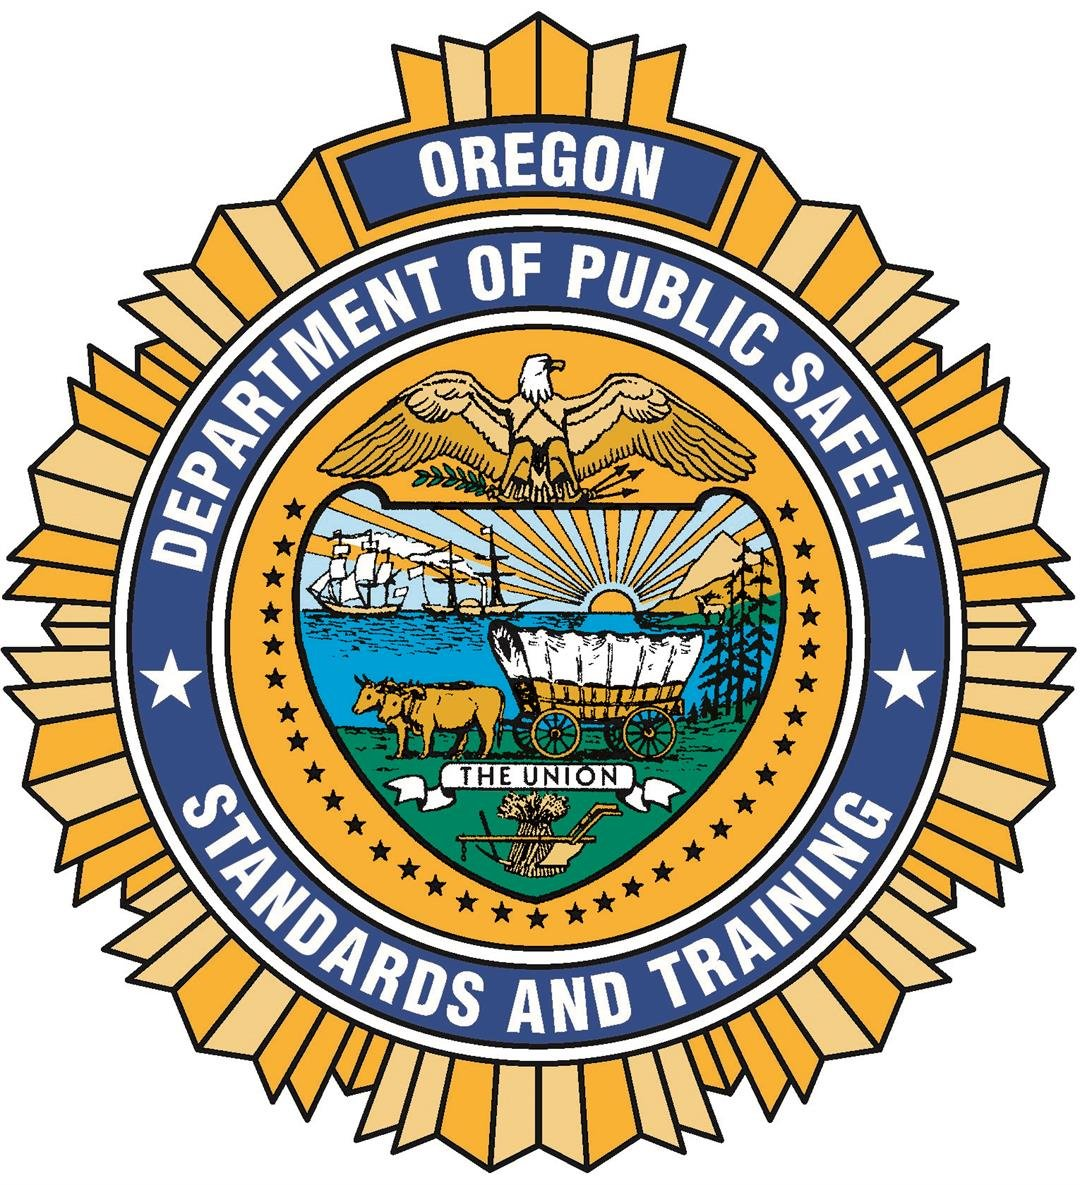 Sheriffs office graduates two from oregon dpsst and welcomes tw on july 15 2016 deputy calvin meade and deputy trevor limburg graduated from the oregon department of public safety standards and training dpsst basic xflitez Gallery